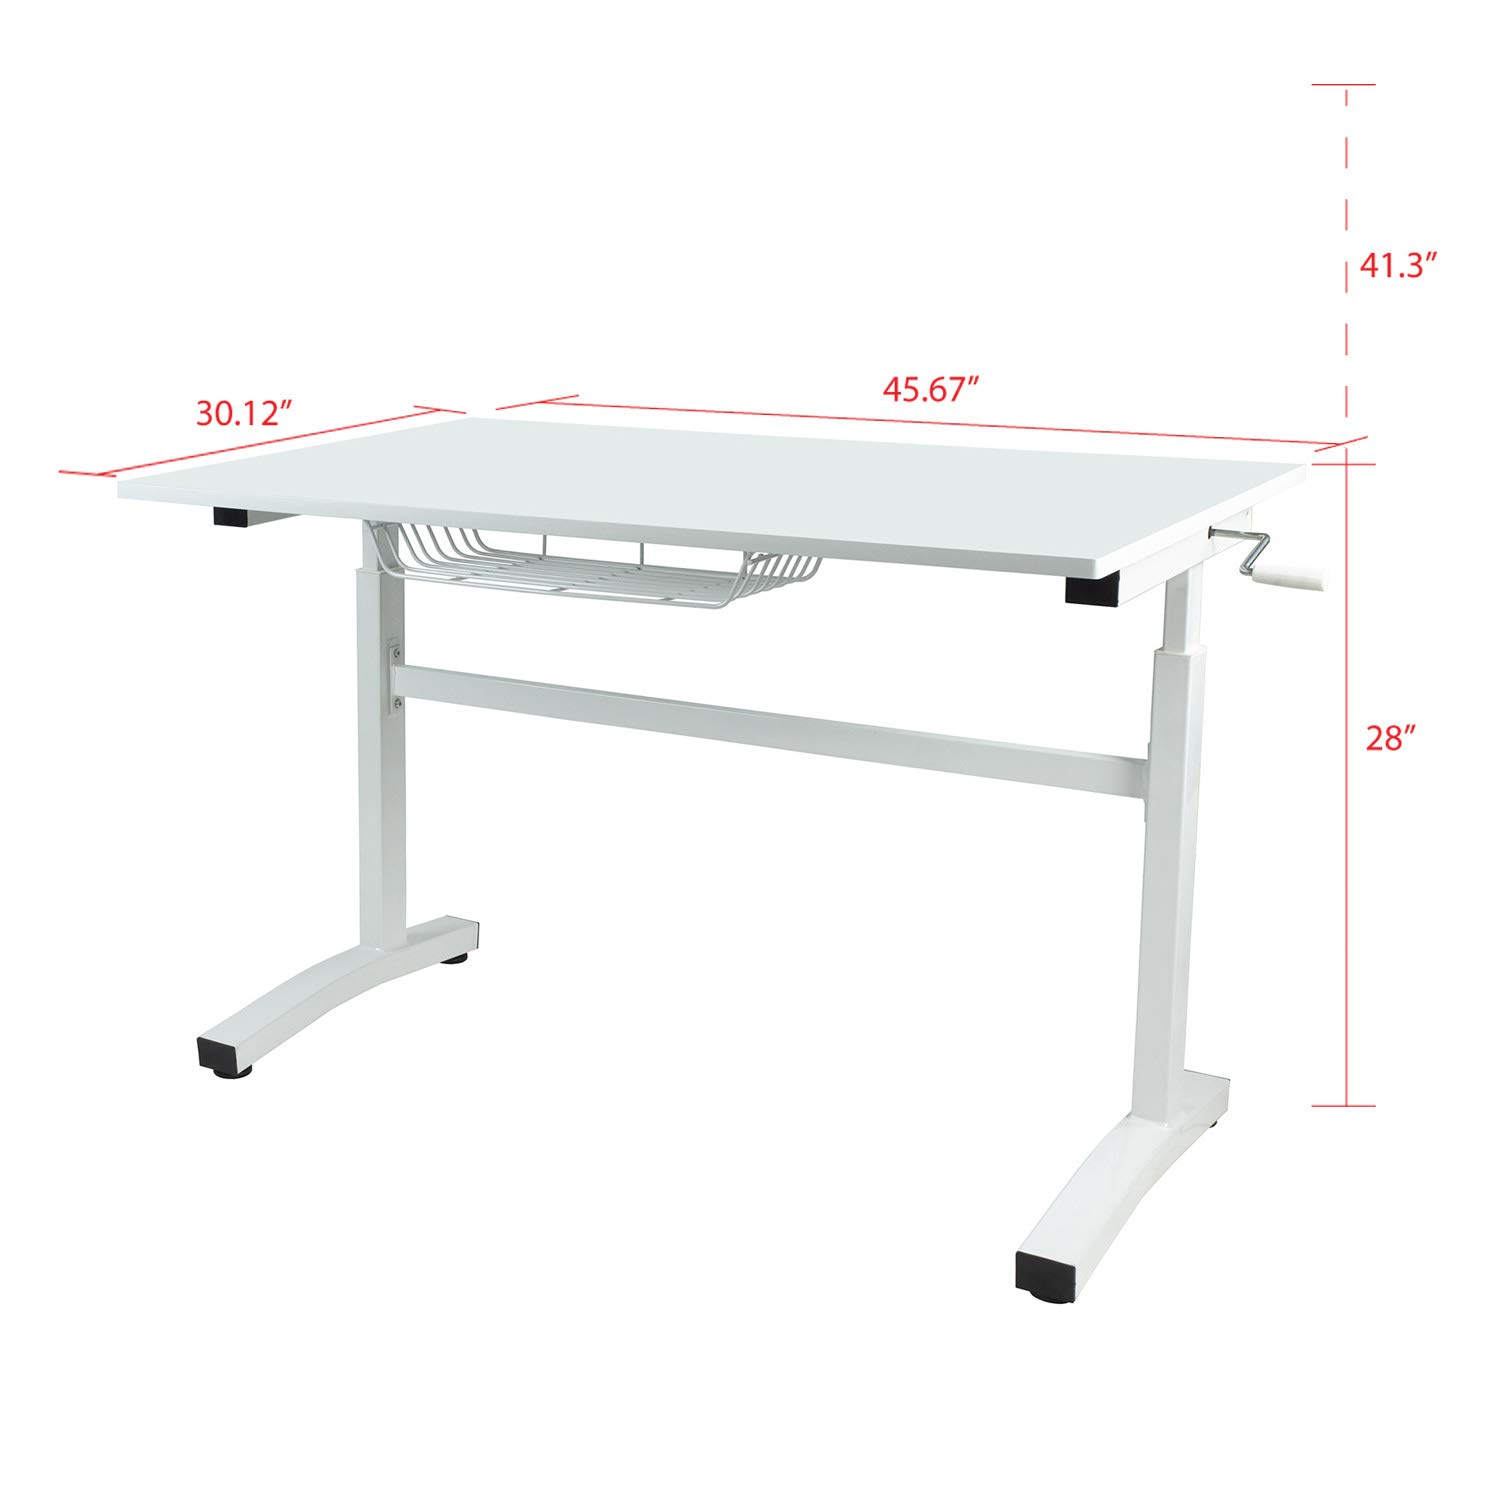 Atlantic Crank Adjustable Height Desk - Sit or Stand at This Large Workspace, Heavy Gauge Steel Frame in White (White, Without Casters)